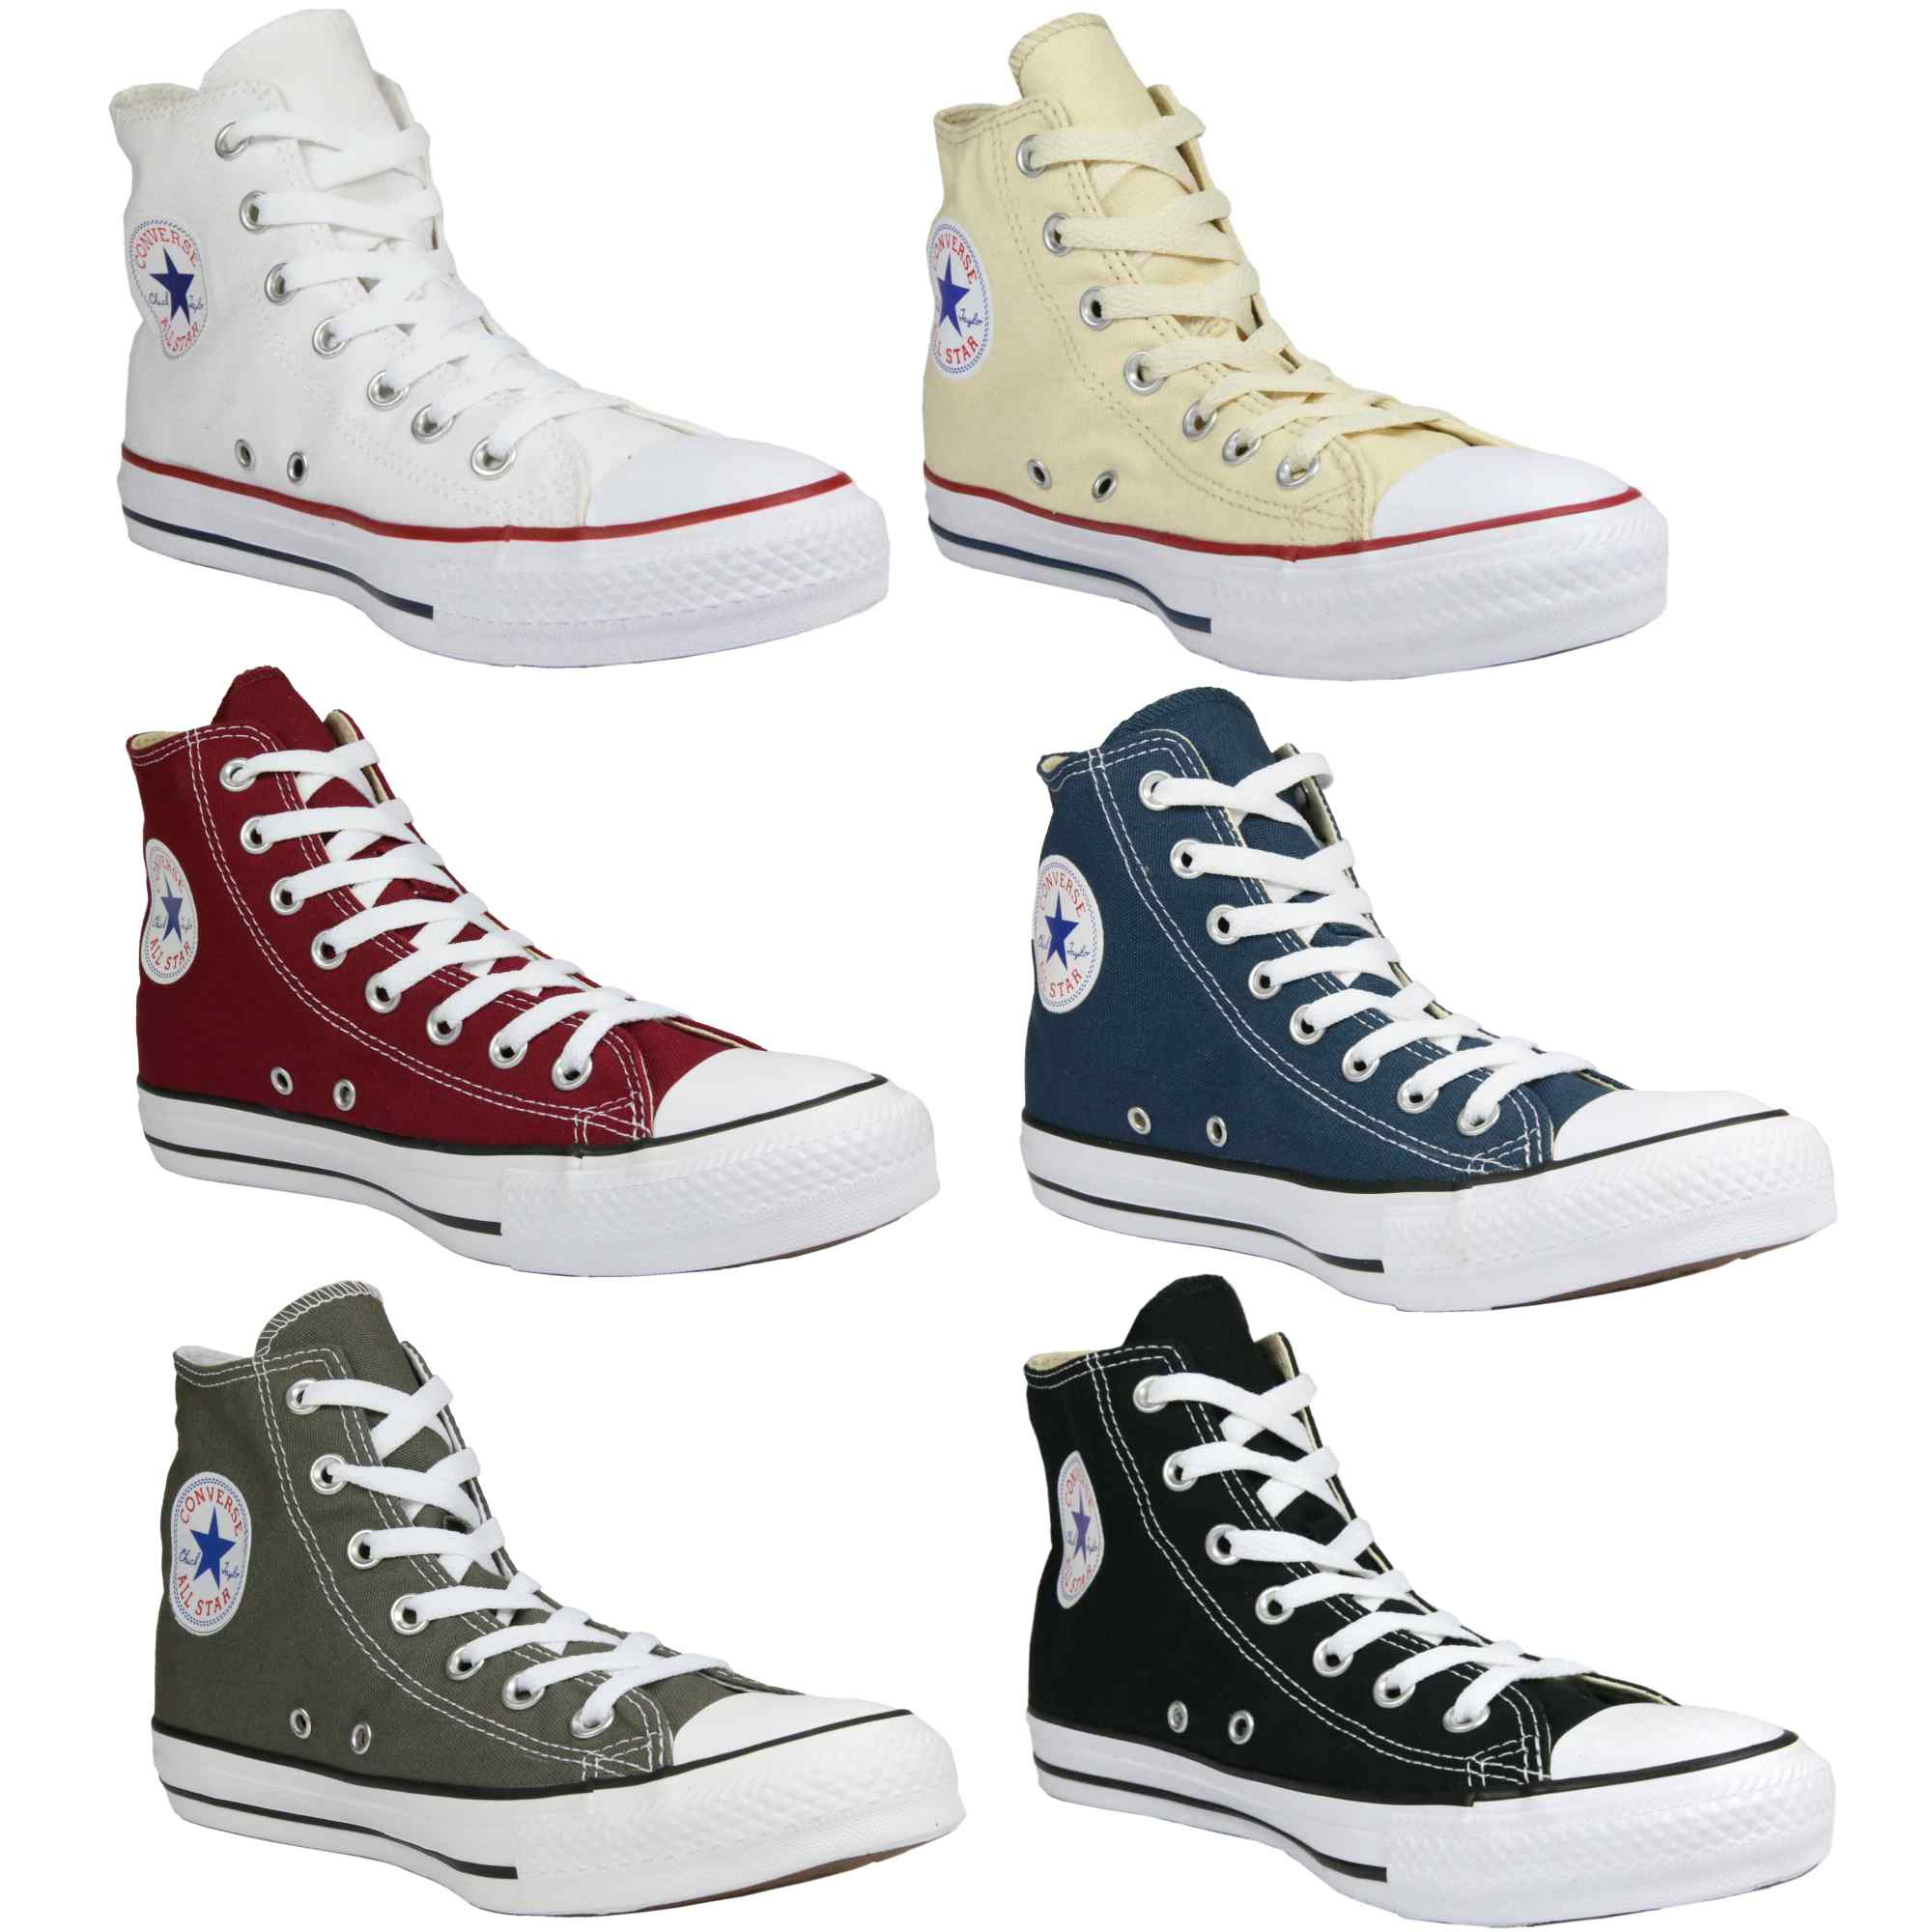 cheapest damänner weiß alle star converse high tops efc65 f0f2f